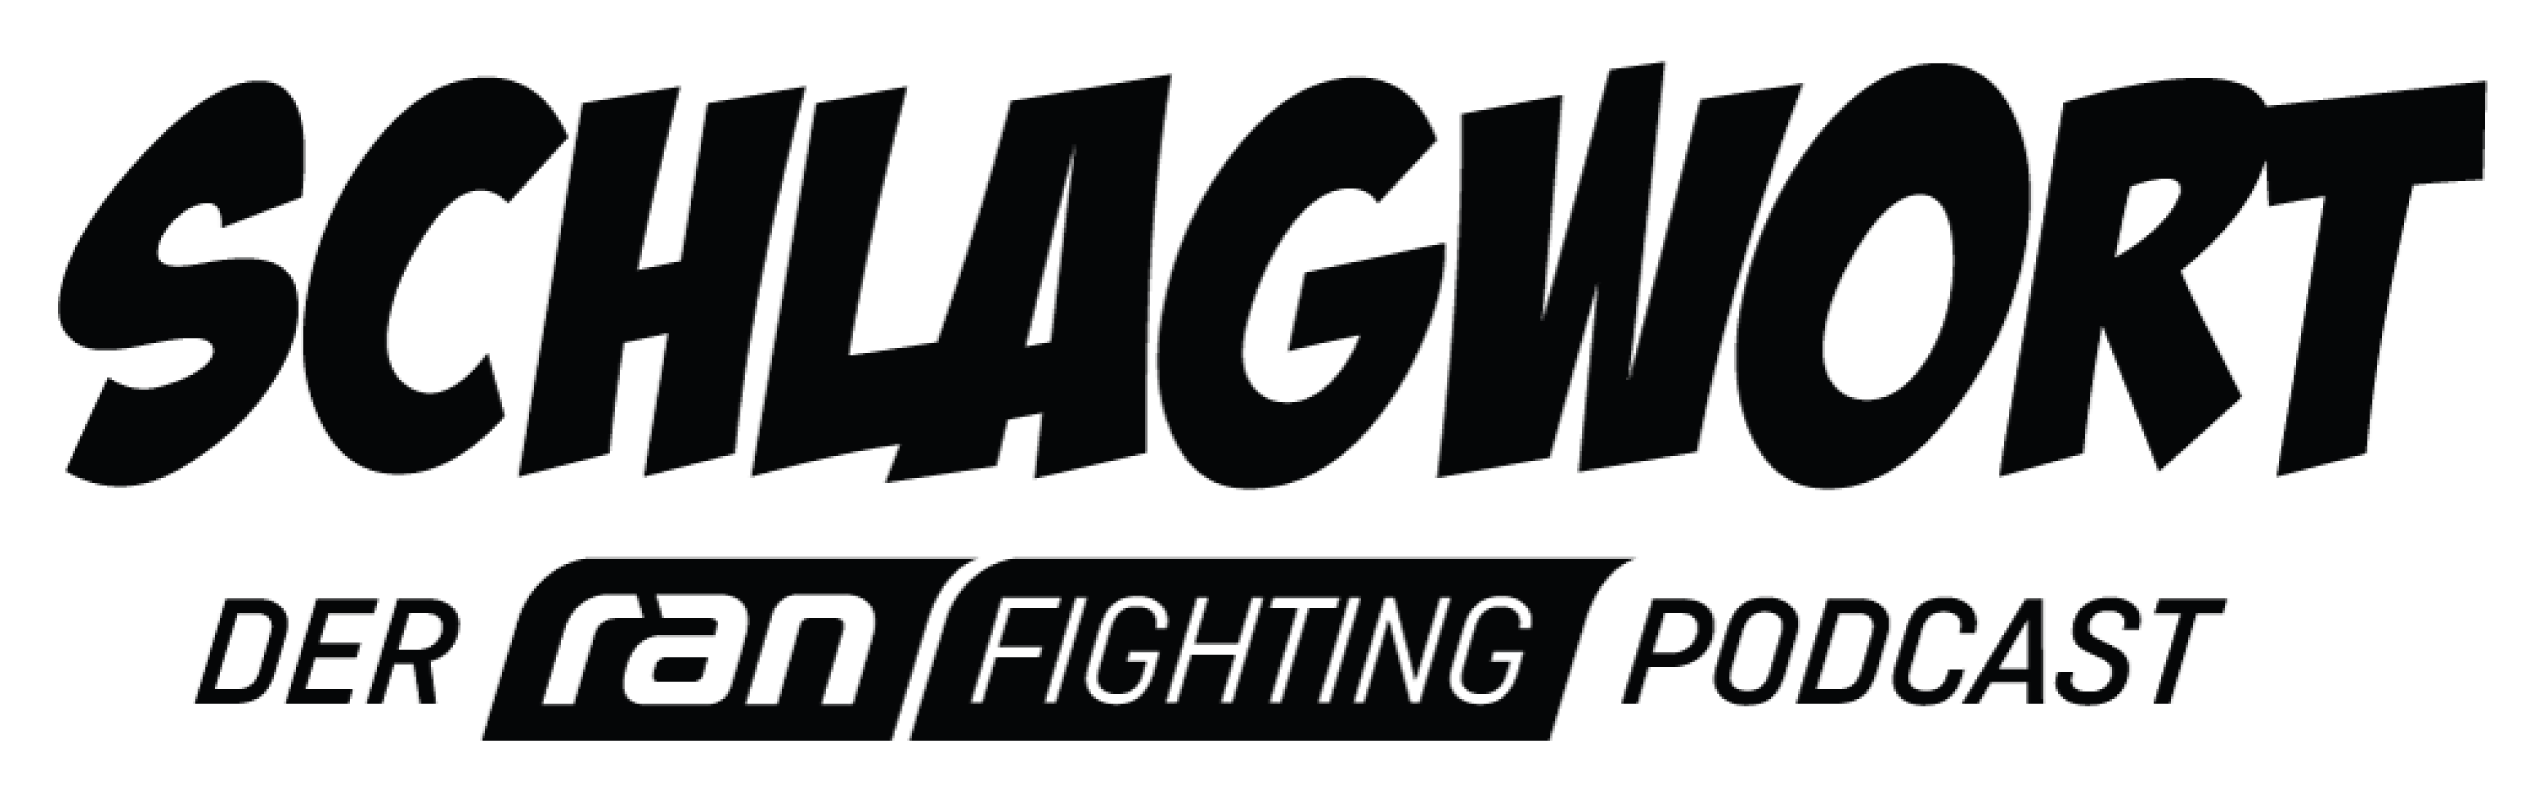 Logo des Ran Fighting Podcast, Schlagwort, Partner von FEFLOGX Sportswear.